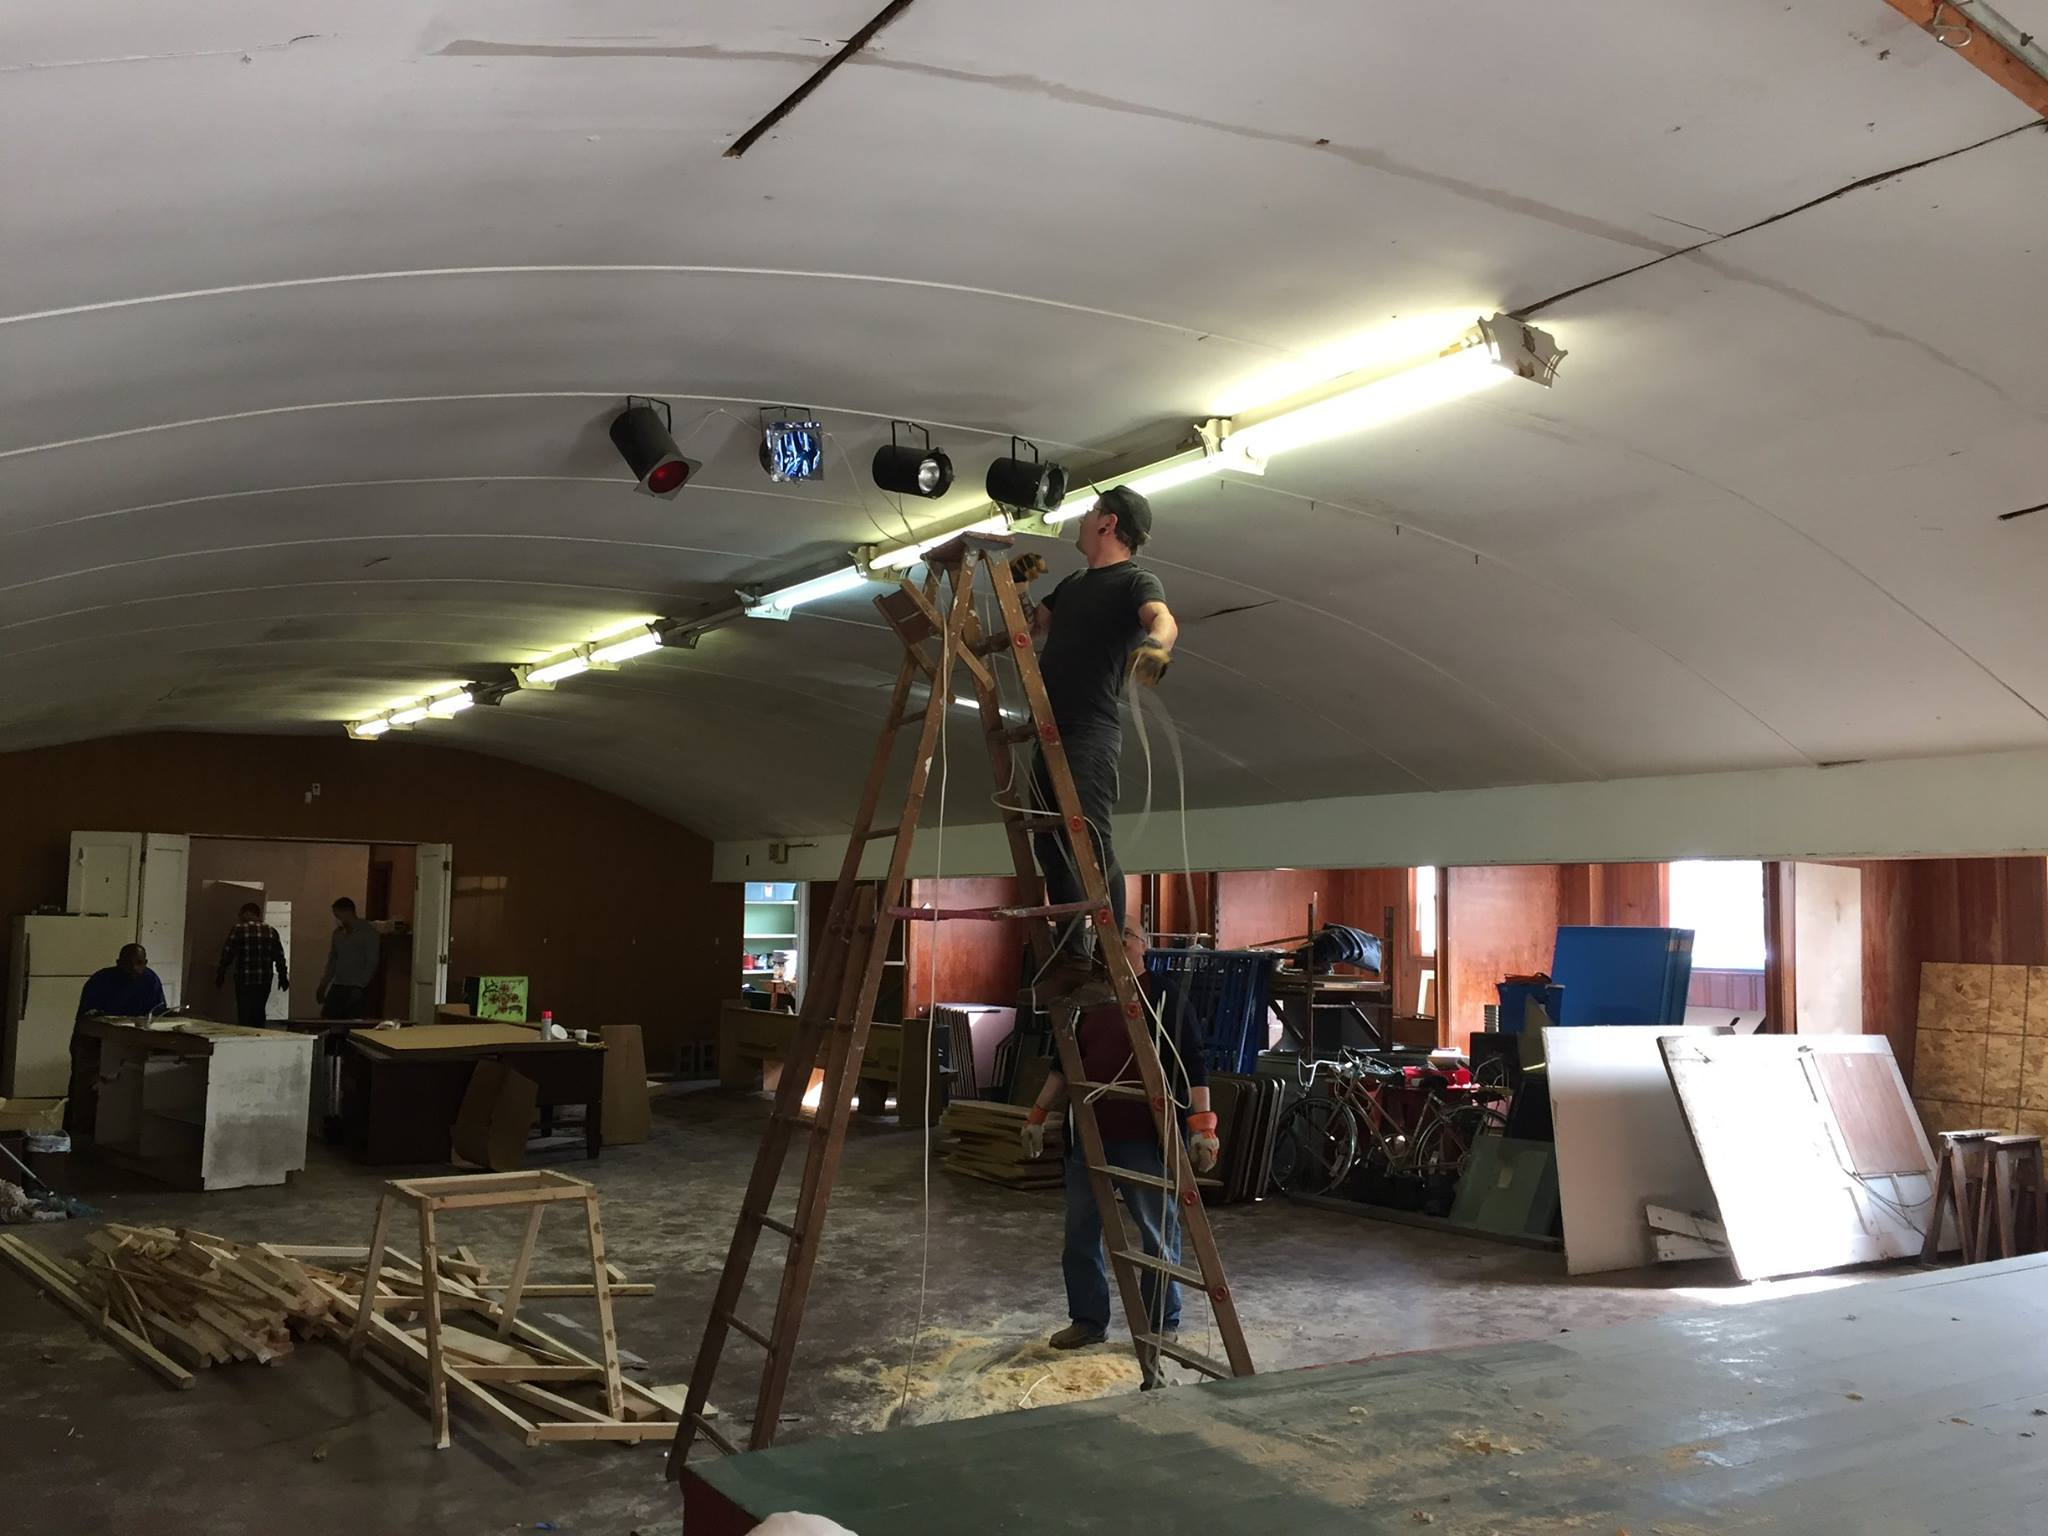 Stage 3: Rehabilitation  - JANUARY - JUNE 2017:We are using the grant money to restore the building back to functional use. Projects include bathroom gutting and renovation, installing AC unit, foundation repair, painting, and deep cleaning.